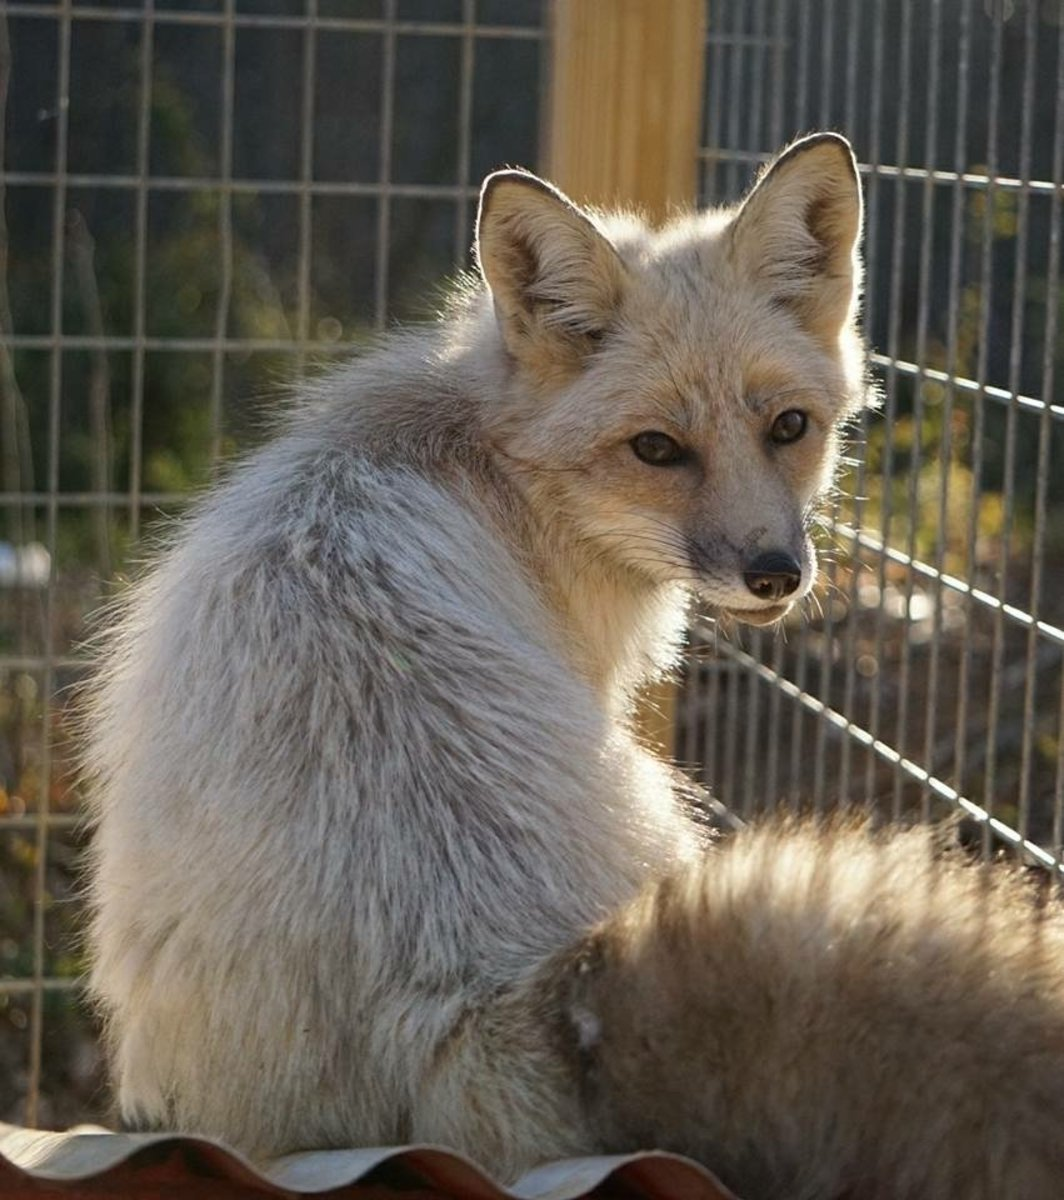 Pet Fox Care: The Basics